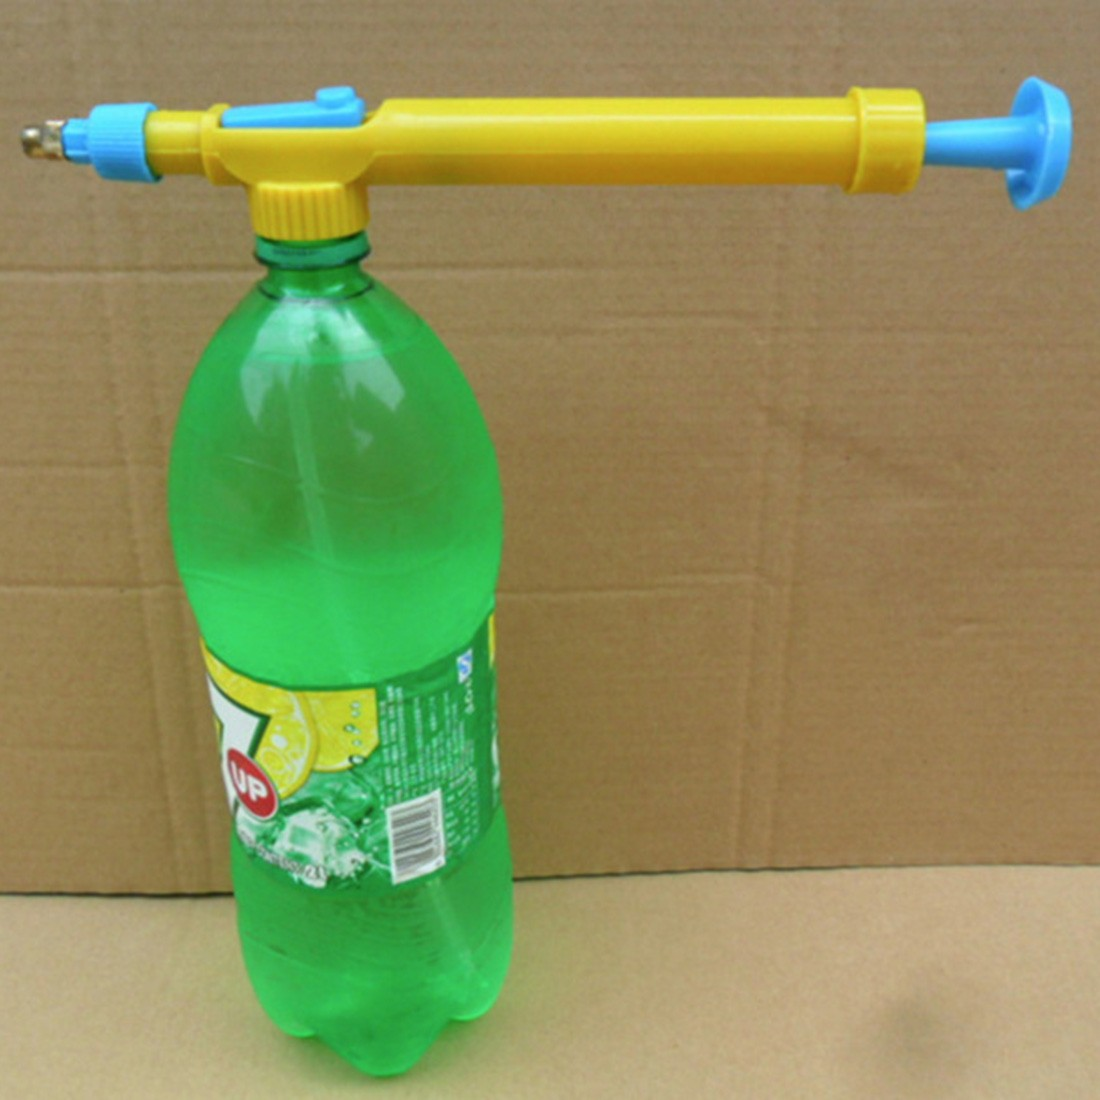 Mini Juice Bottles Interface Plastic Trolley Gun Sprayer Head Water Pressure Sprayer For Garden Bonsai Water Pesticide Spraying